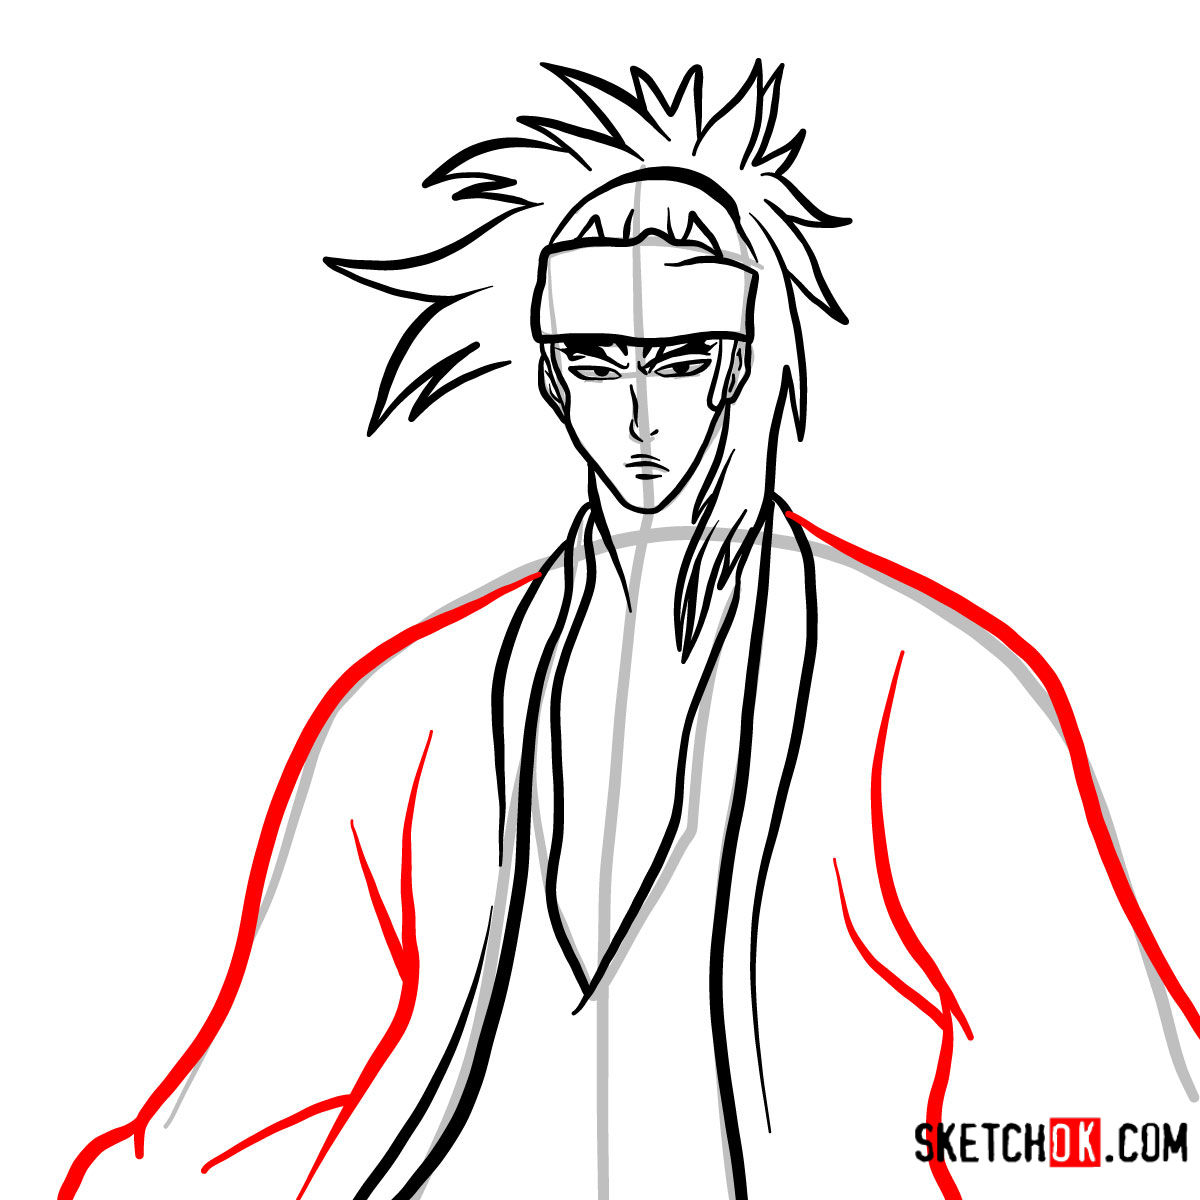 How to draw Renji Abarai's portrait | Bleach - step 09